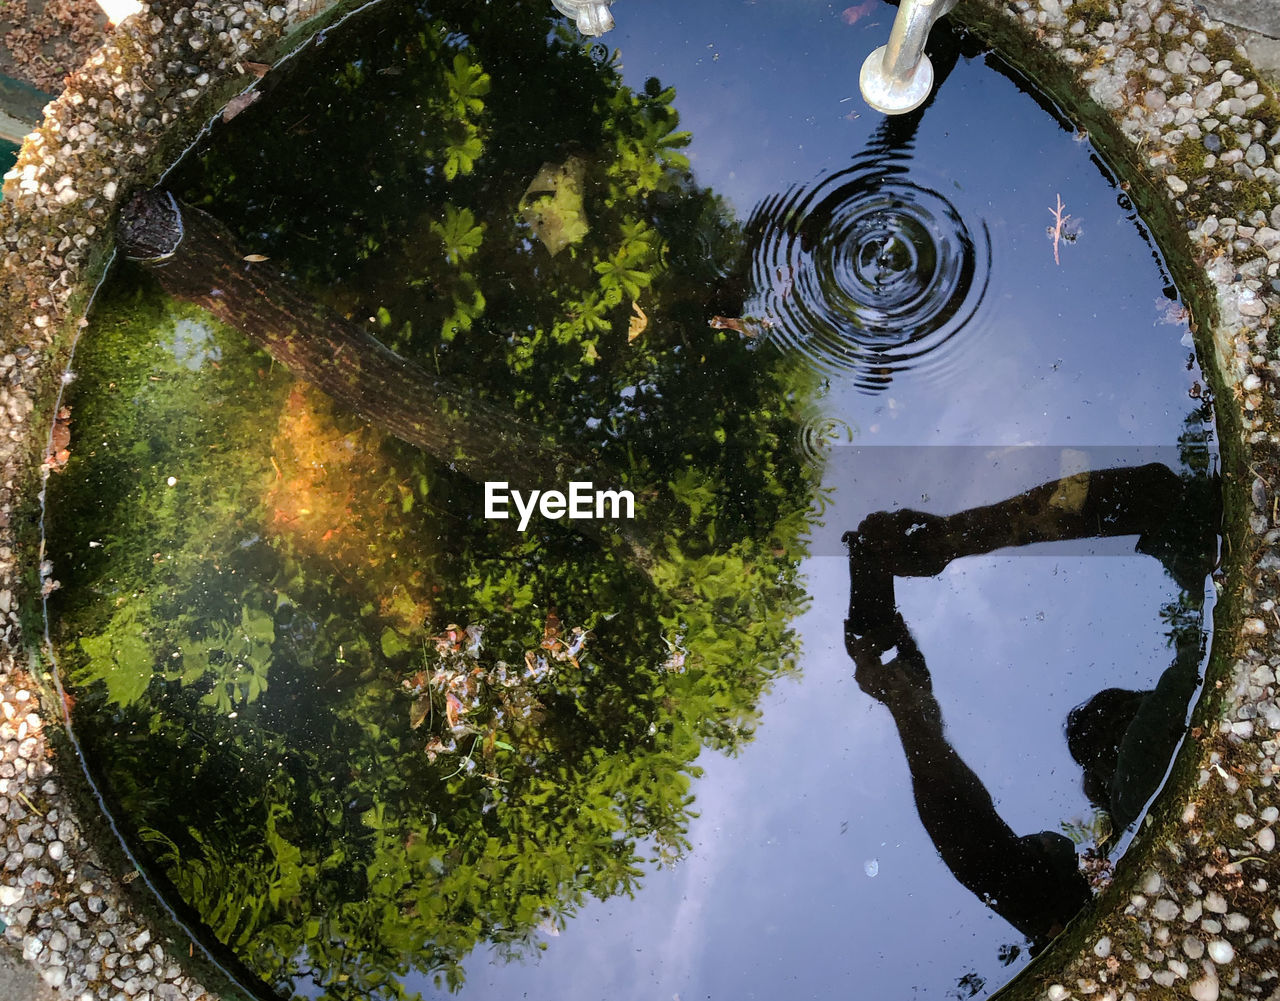 water, nature, reflection, plant, high angle view, no people, lake, tree, day, outdoors, directly above, standing water, circle, geometric shape, sky, waterfront, architecture, beauty in nature, space